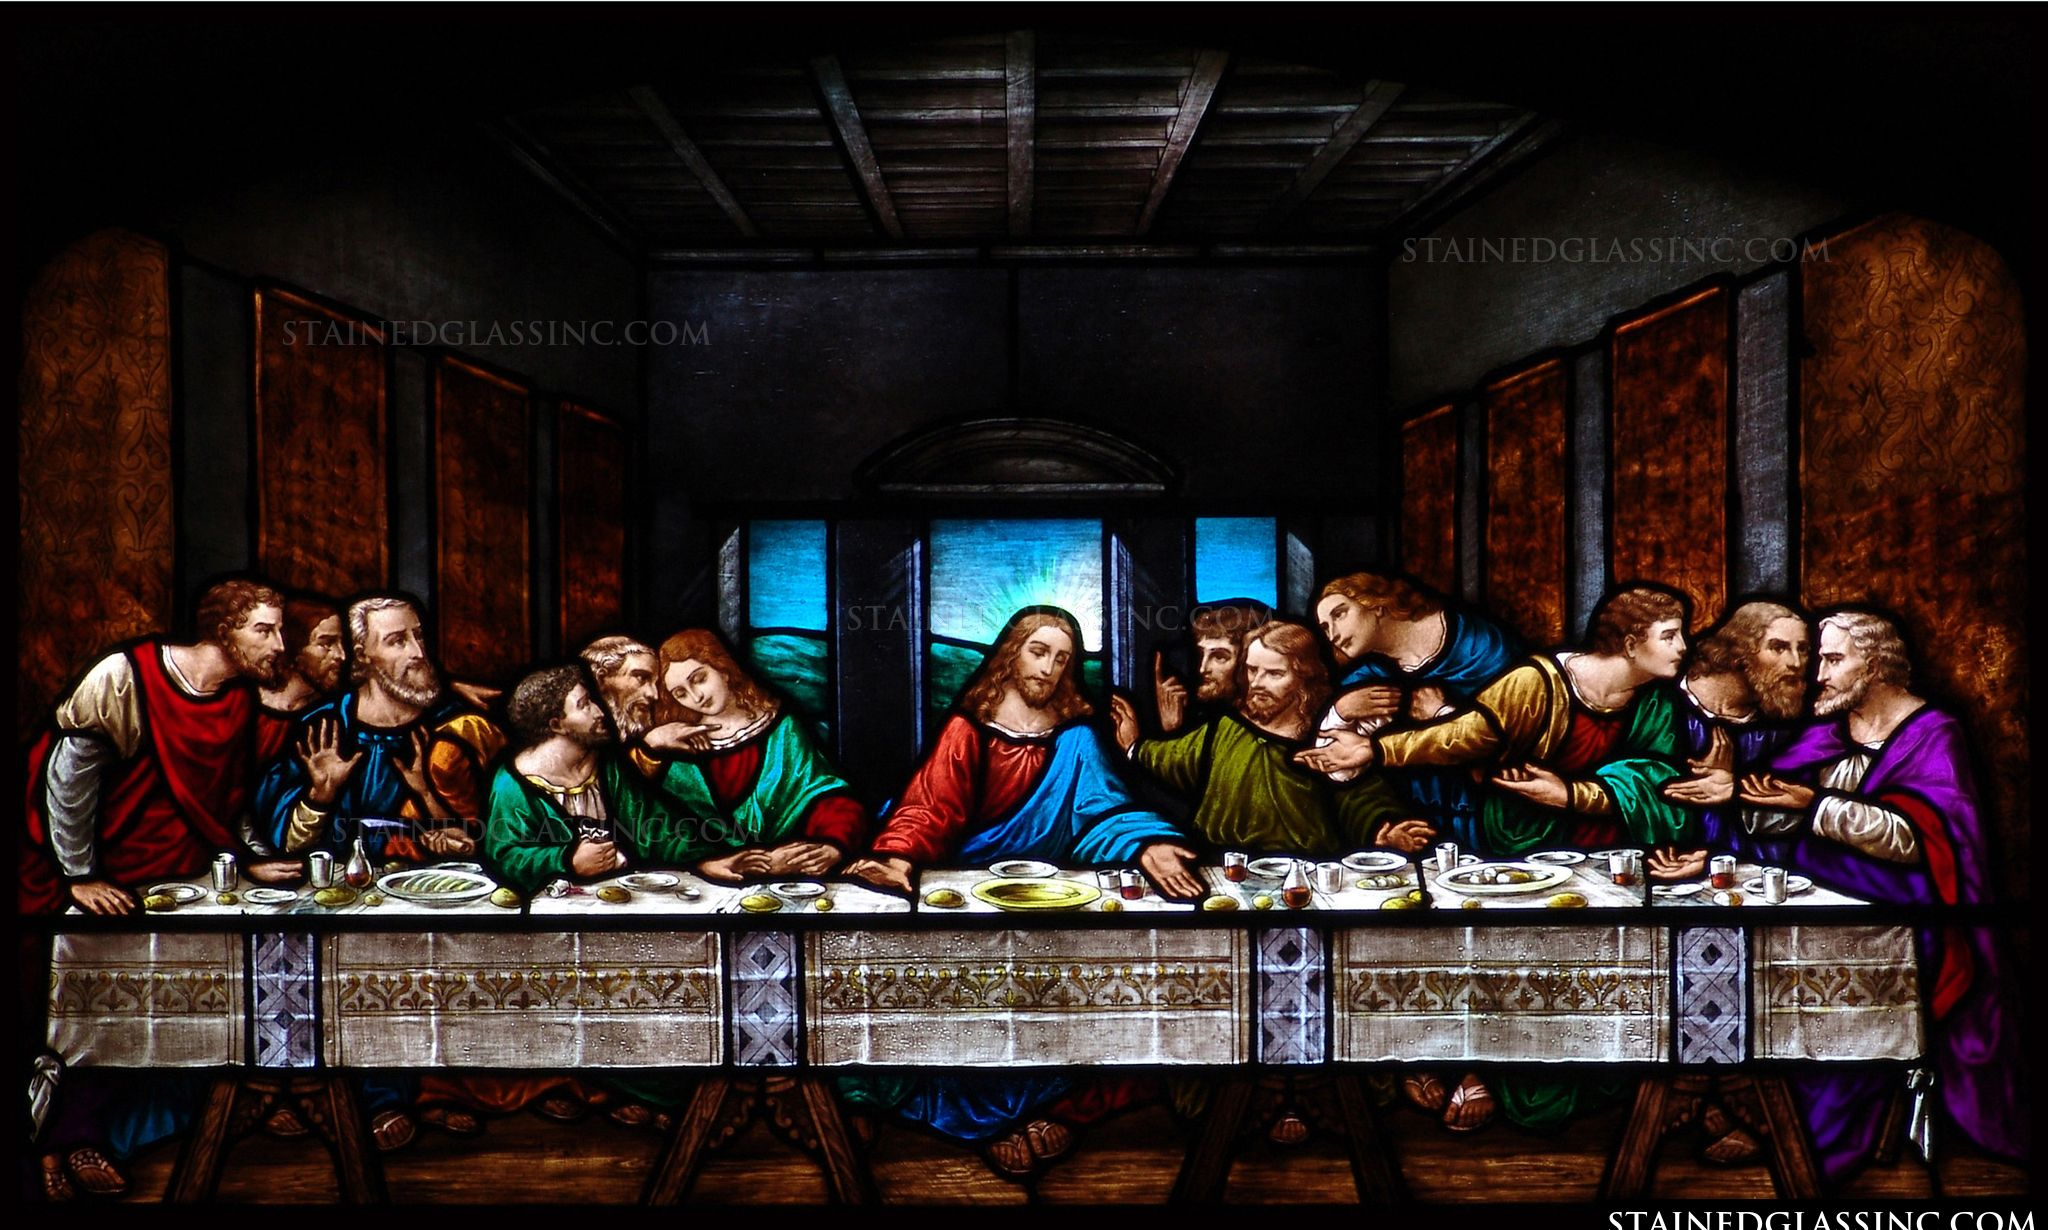 quotthe last supperquot religious stained glass window